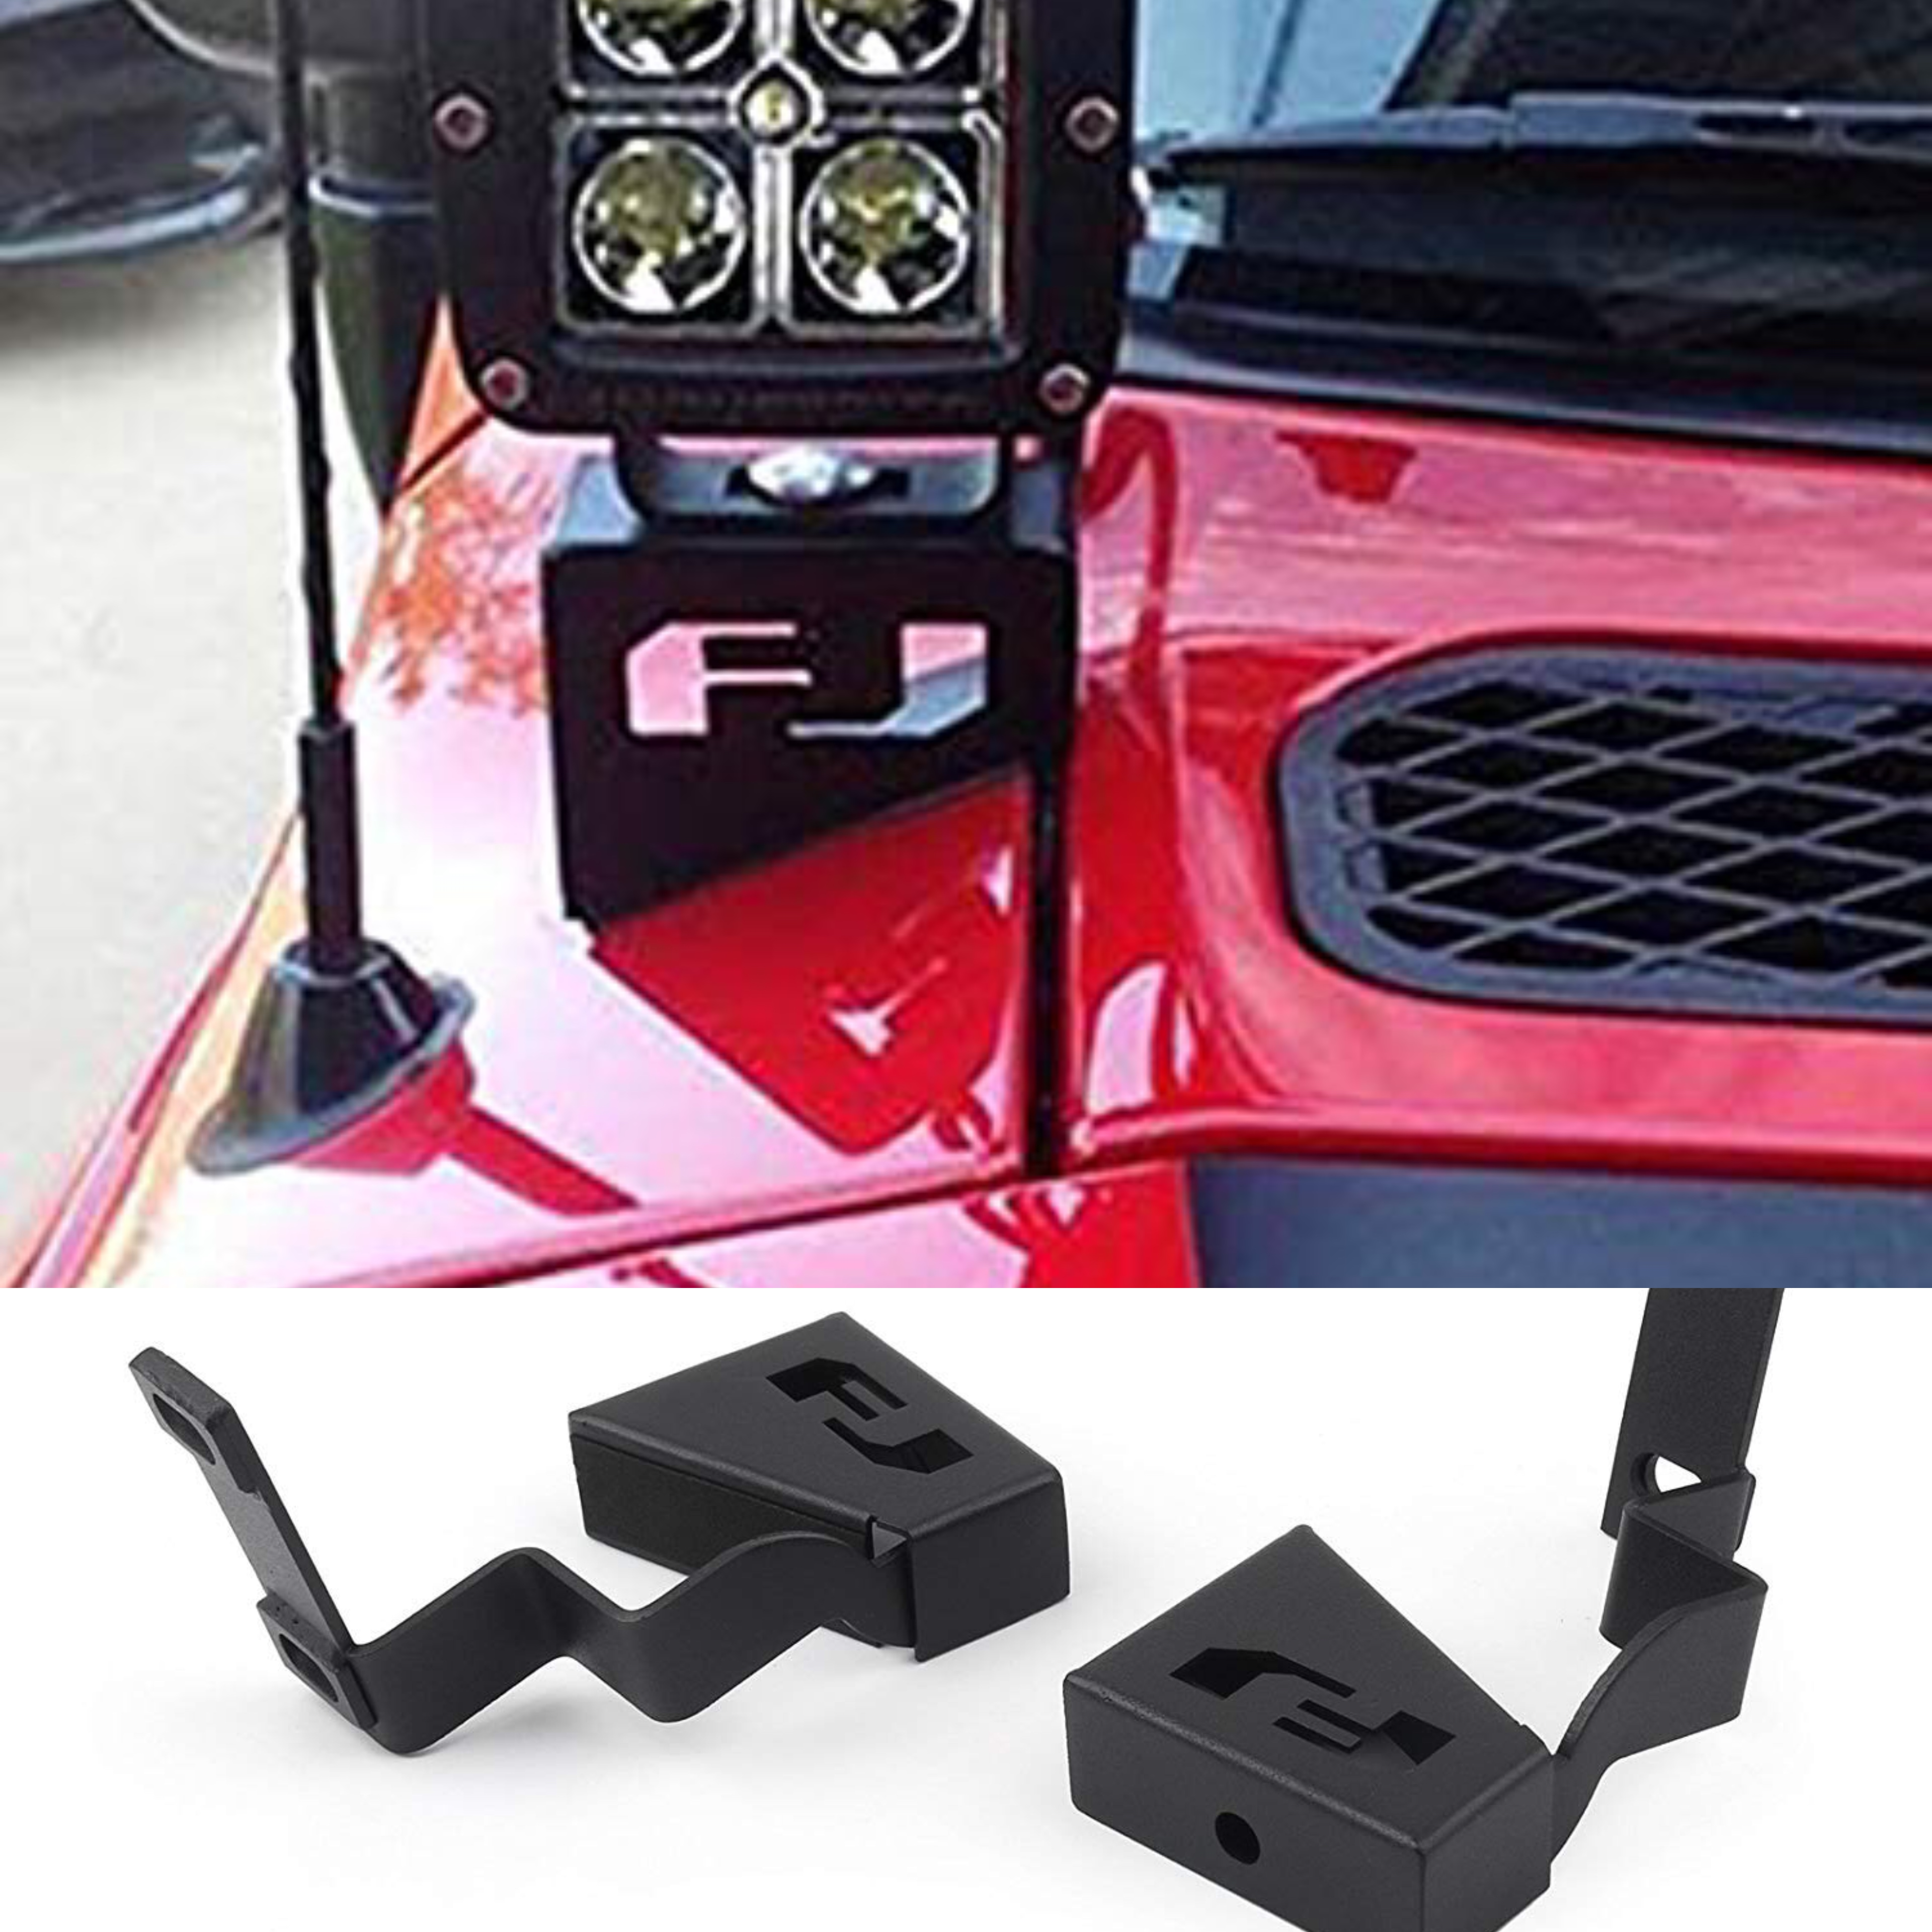 Car Cubic Spot Beam Led Front Cowl Light Kit With Windshield Pillar Steel Mounting Brackets For Toyota Fj Cruiser 2007-2016